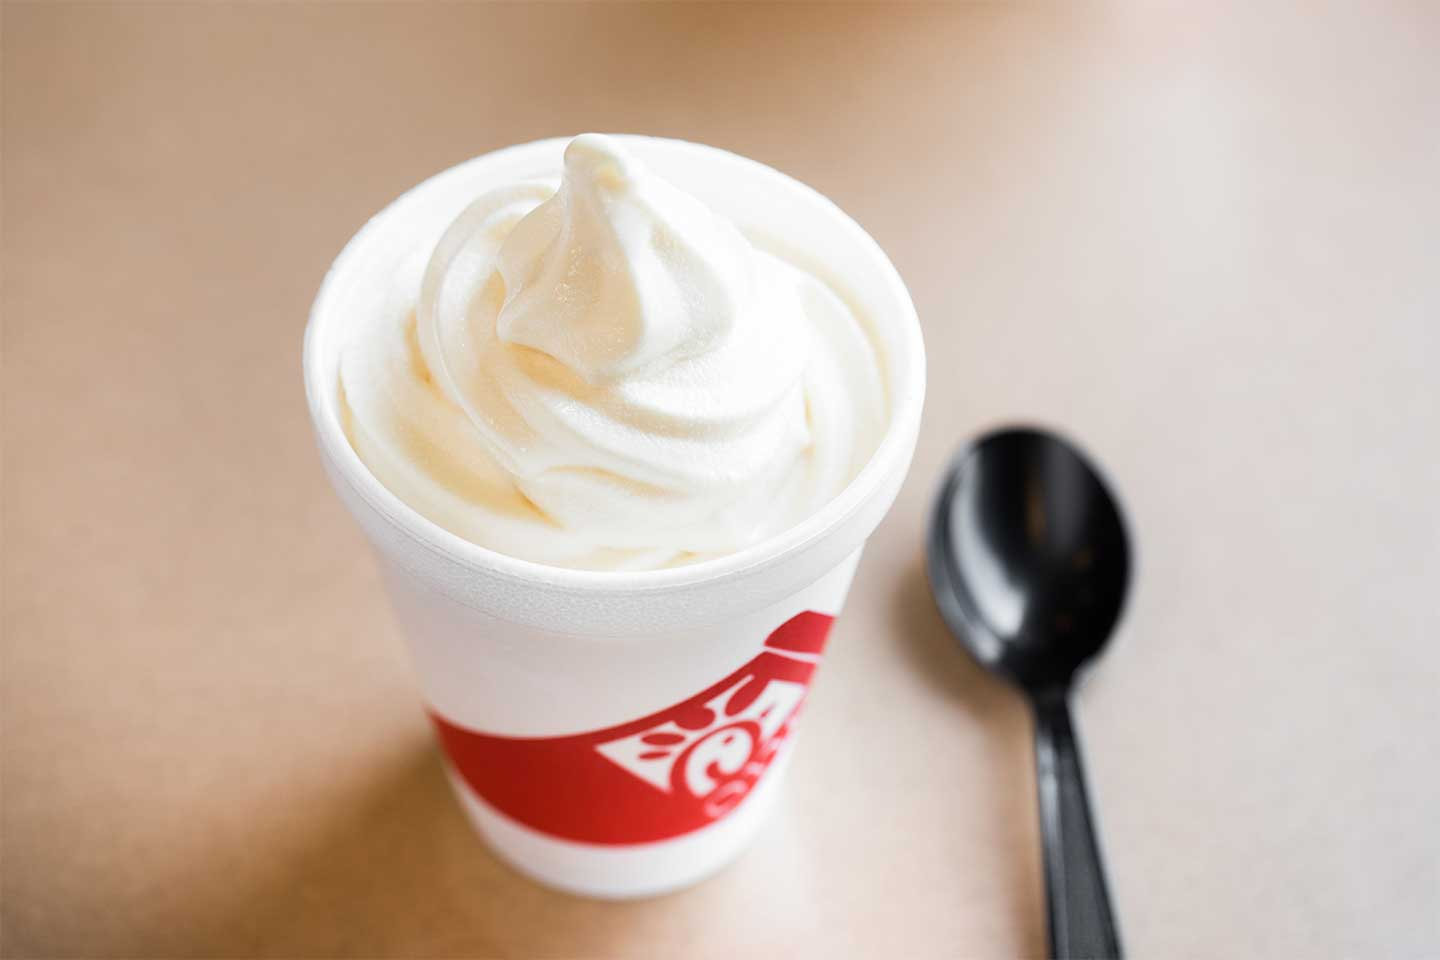 Chick-fil-A Vanilla Icedream cup with a black spoon